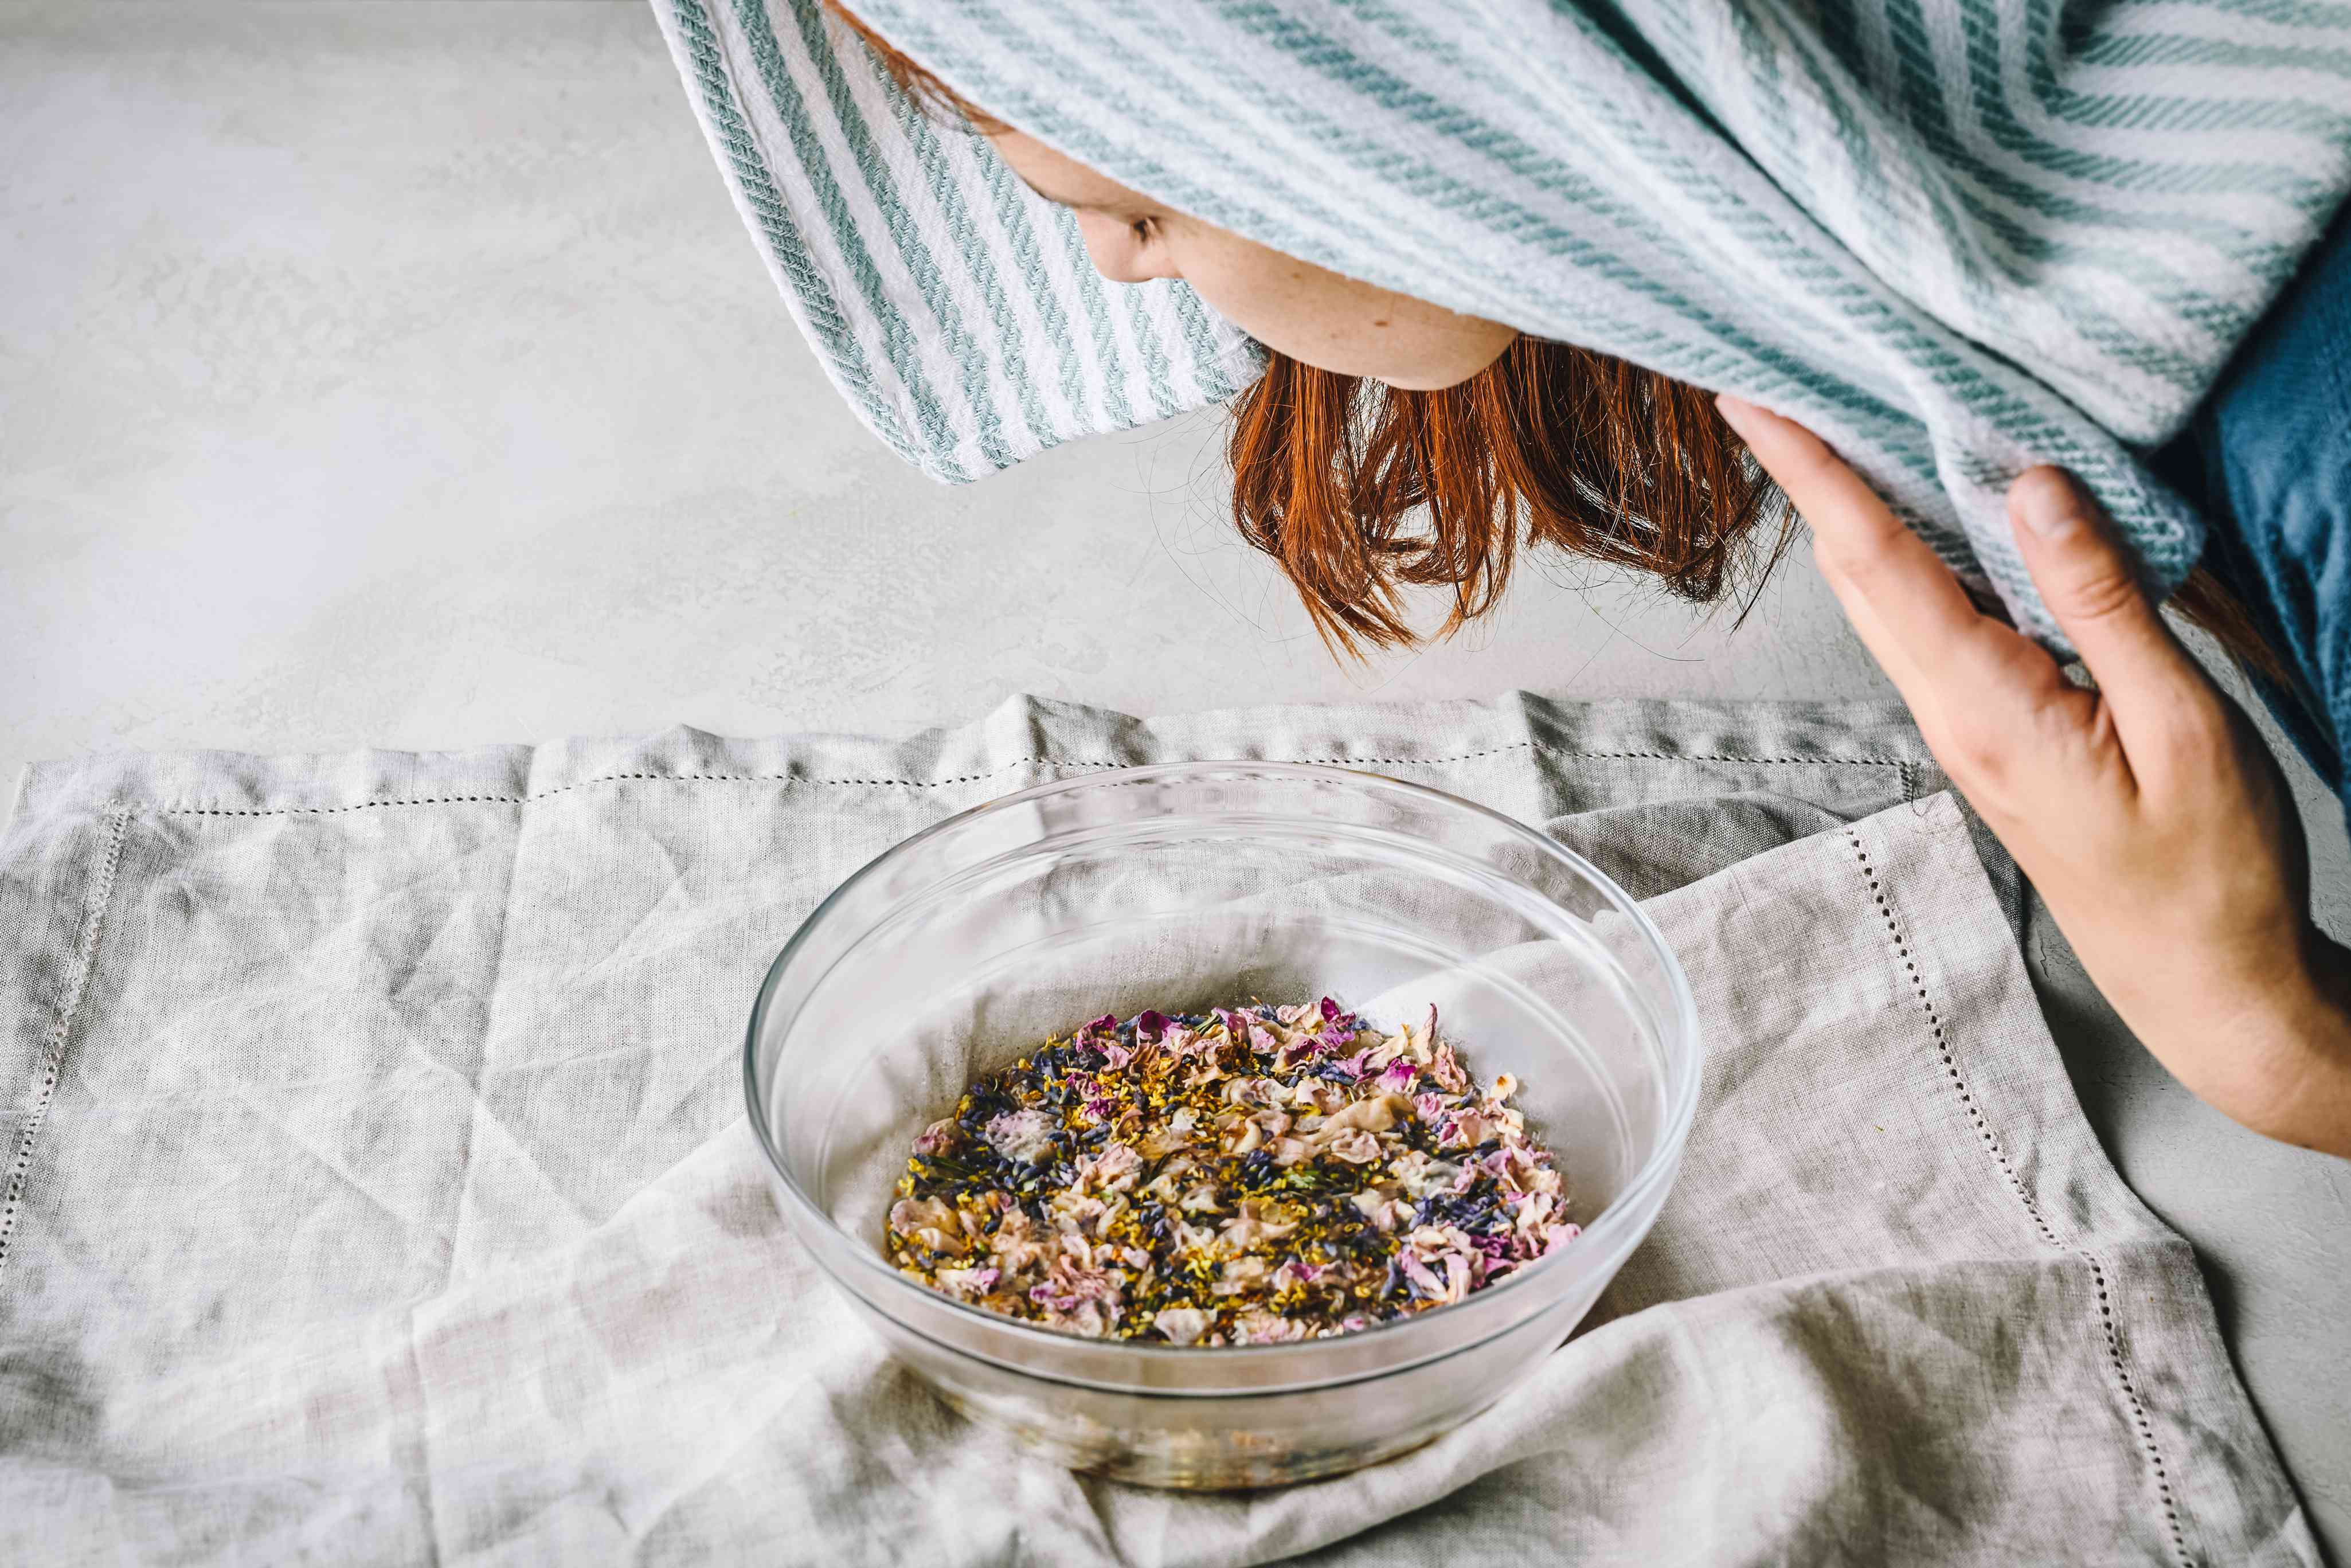 side profile of woman immerses her face in hot steam facial from glass bowl with flowers